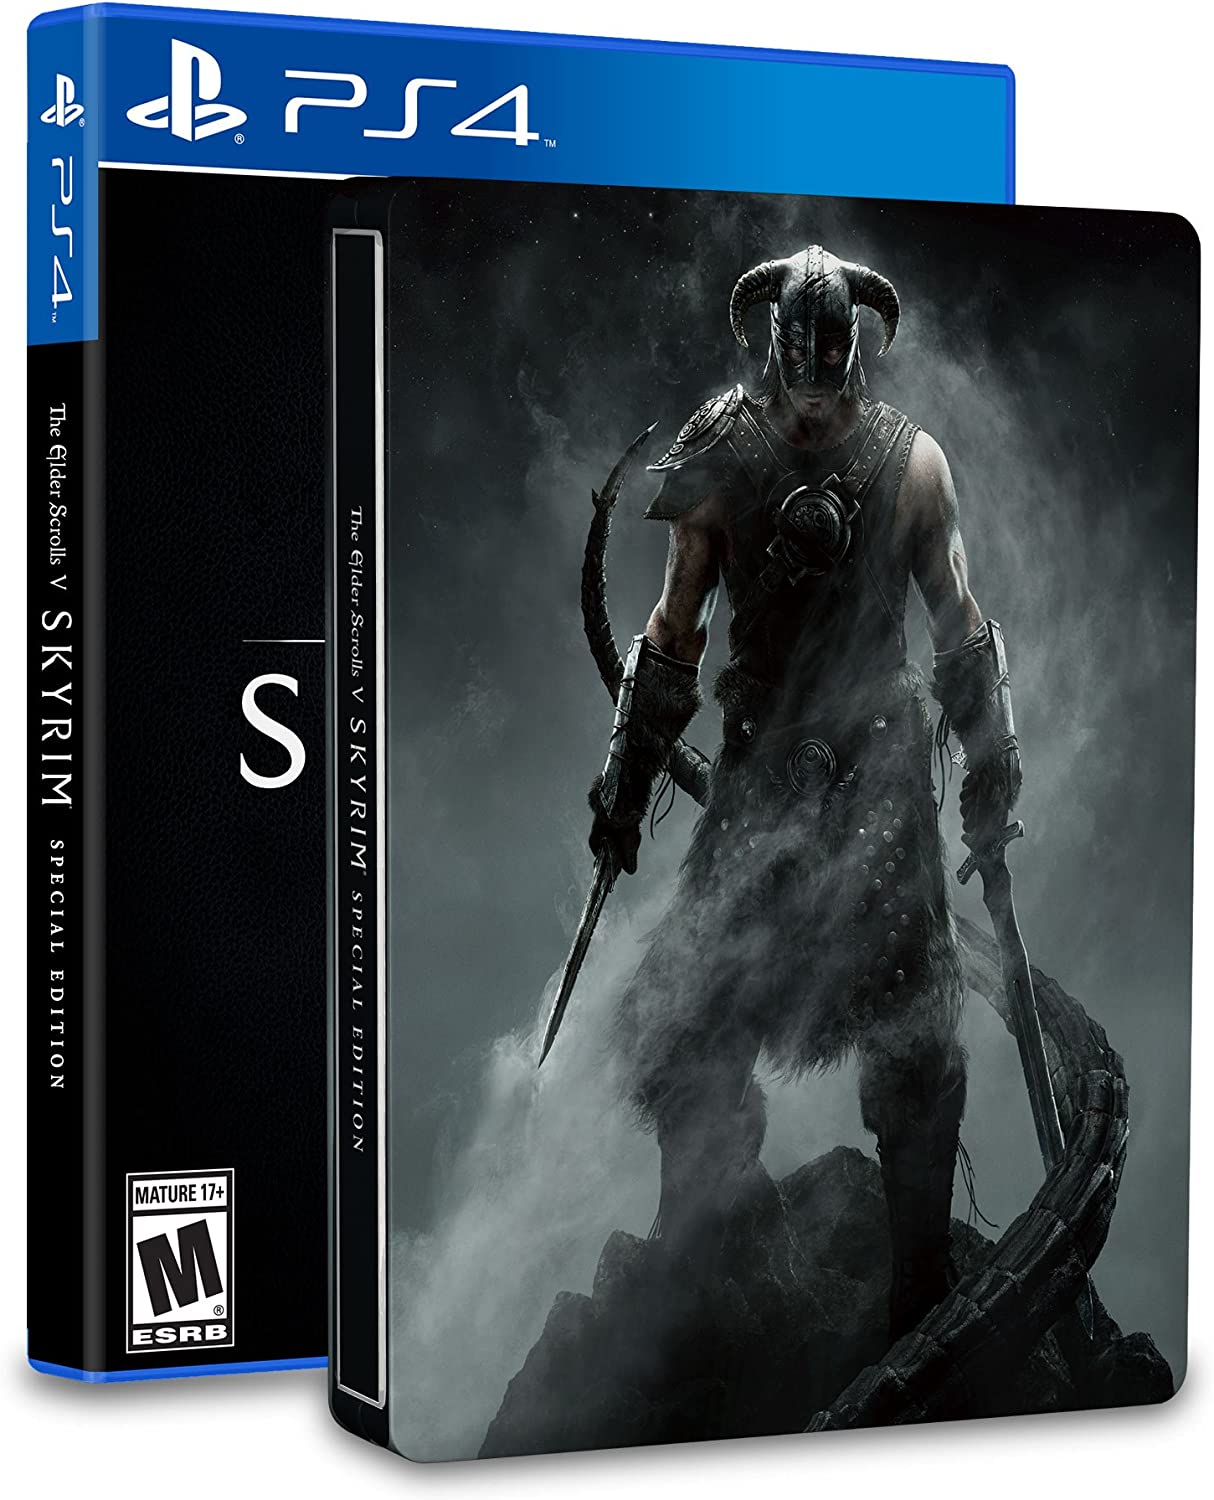 Amazon com: The Elder Scrolls V: Skyrim SteelBook Edition